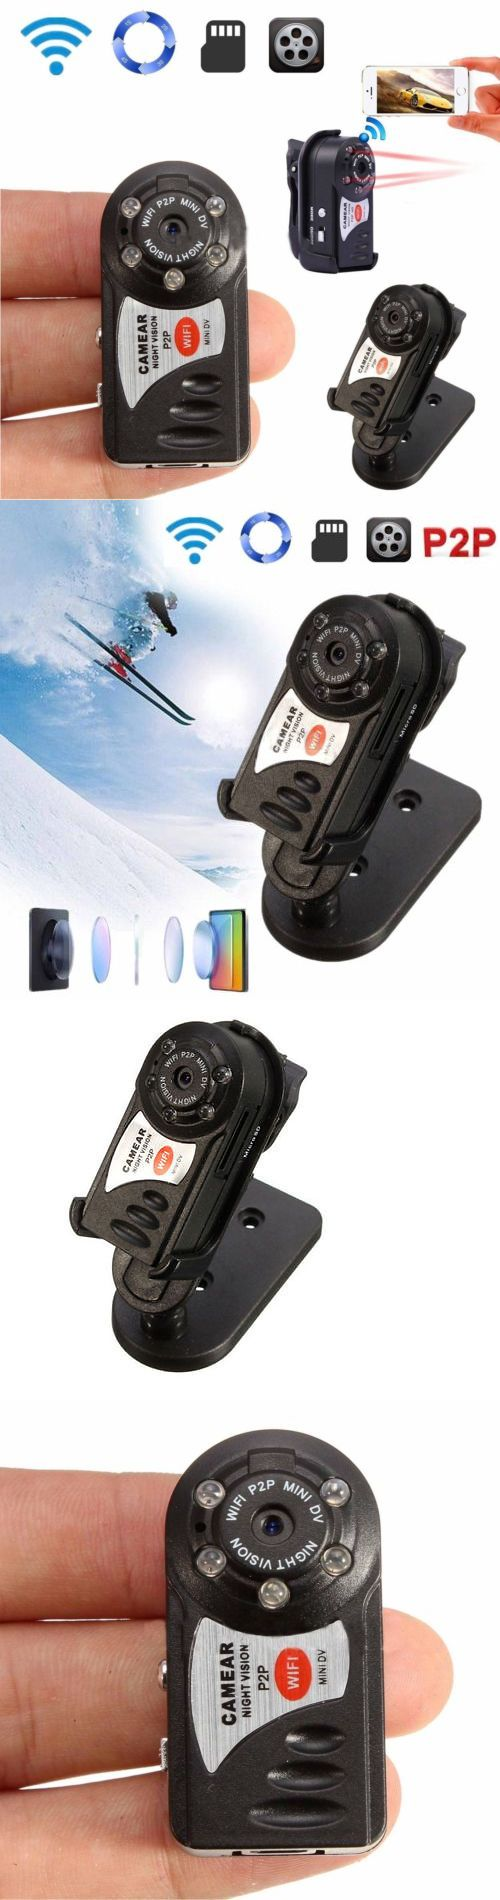 Security Cameras: Wireless Wifi Web Ip P2p Spy Hidden Security Camera Mini Night Vision Camcorder -> BUY IT NOW ONLY: $118.58 on eBay!